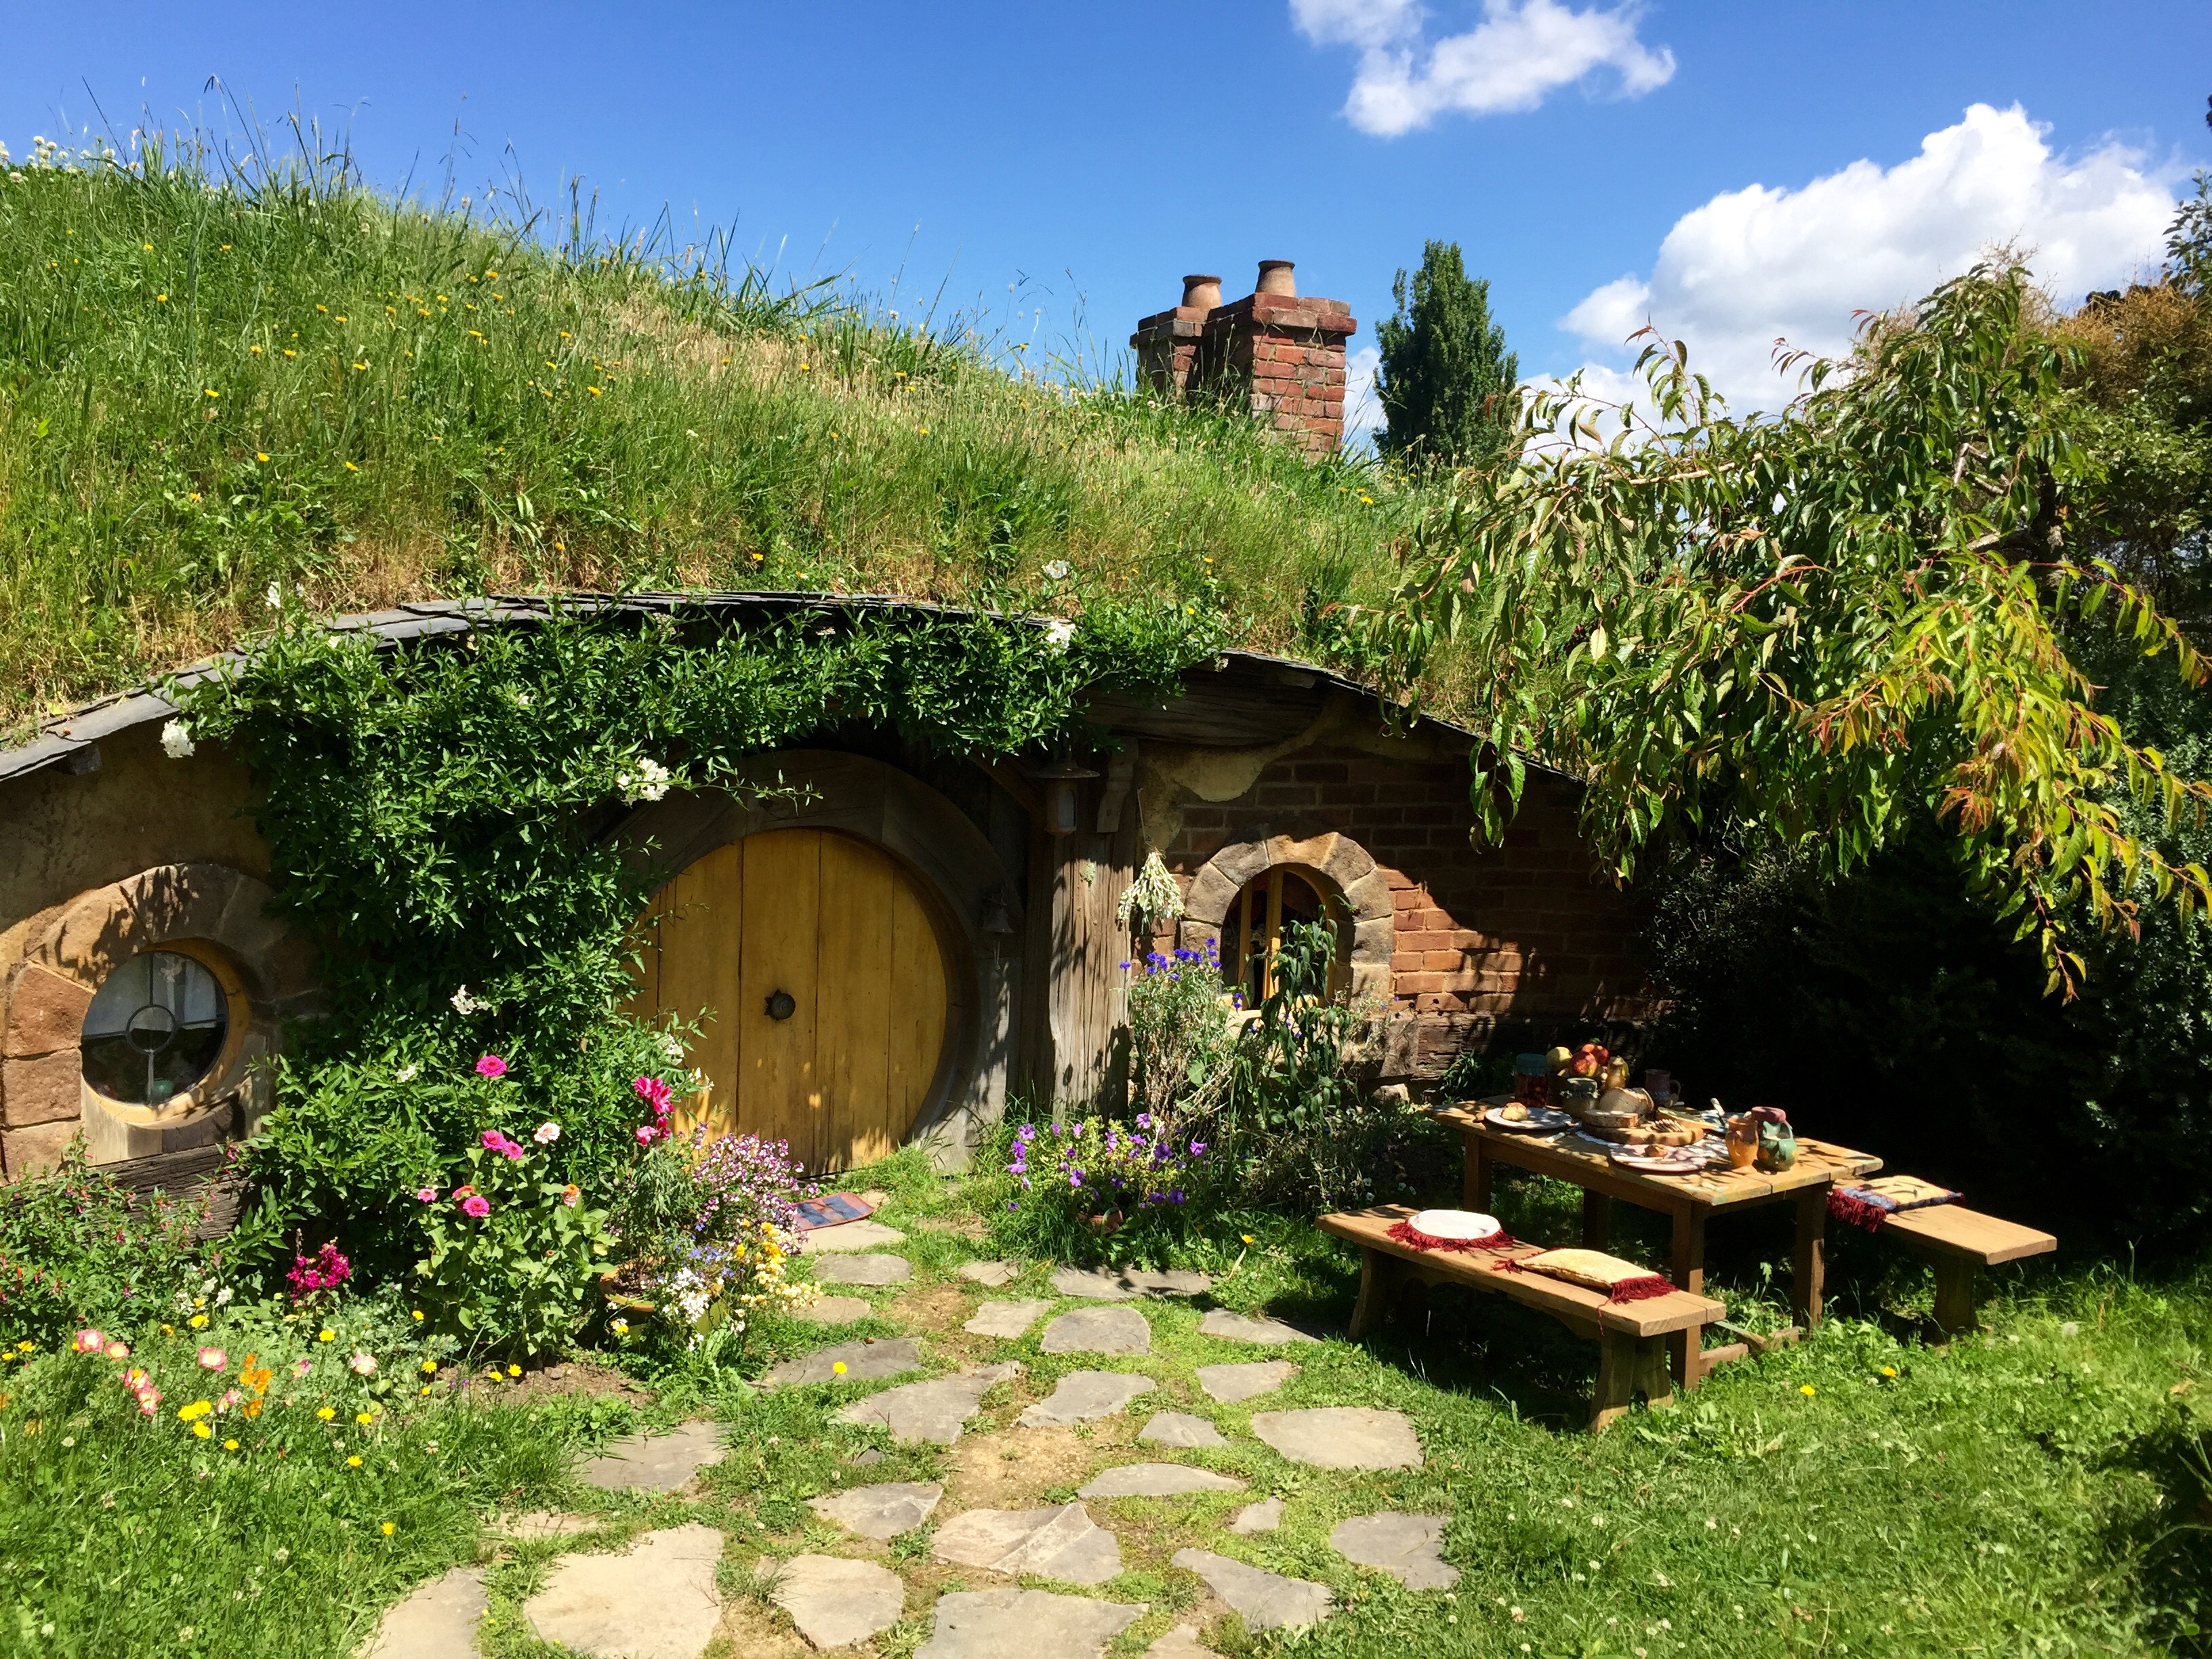 Captivating File:A Hobbit House